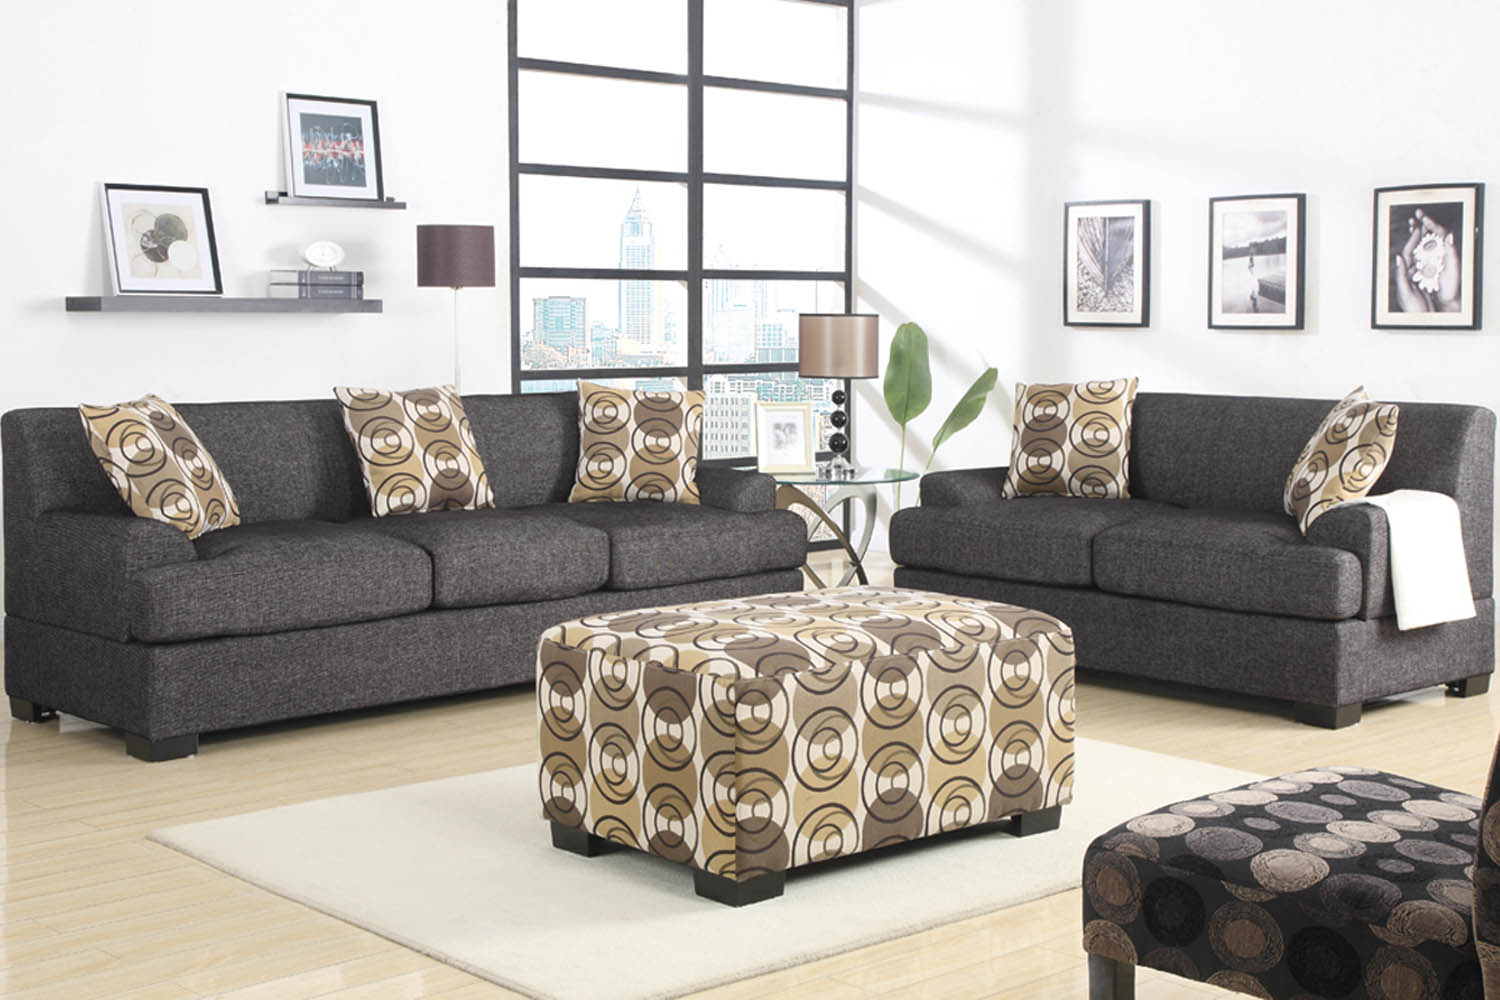 2 piece grey sofa set - Living room sofa sets decoration ...